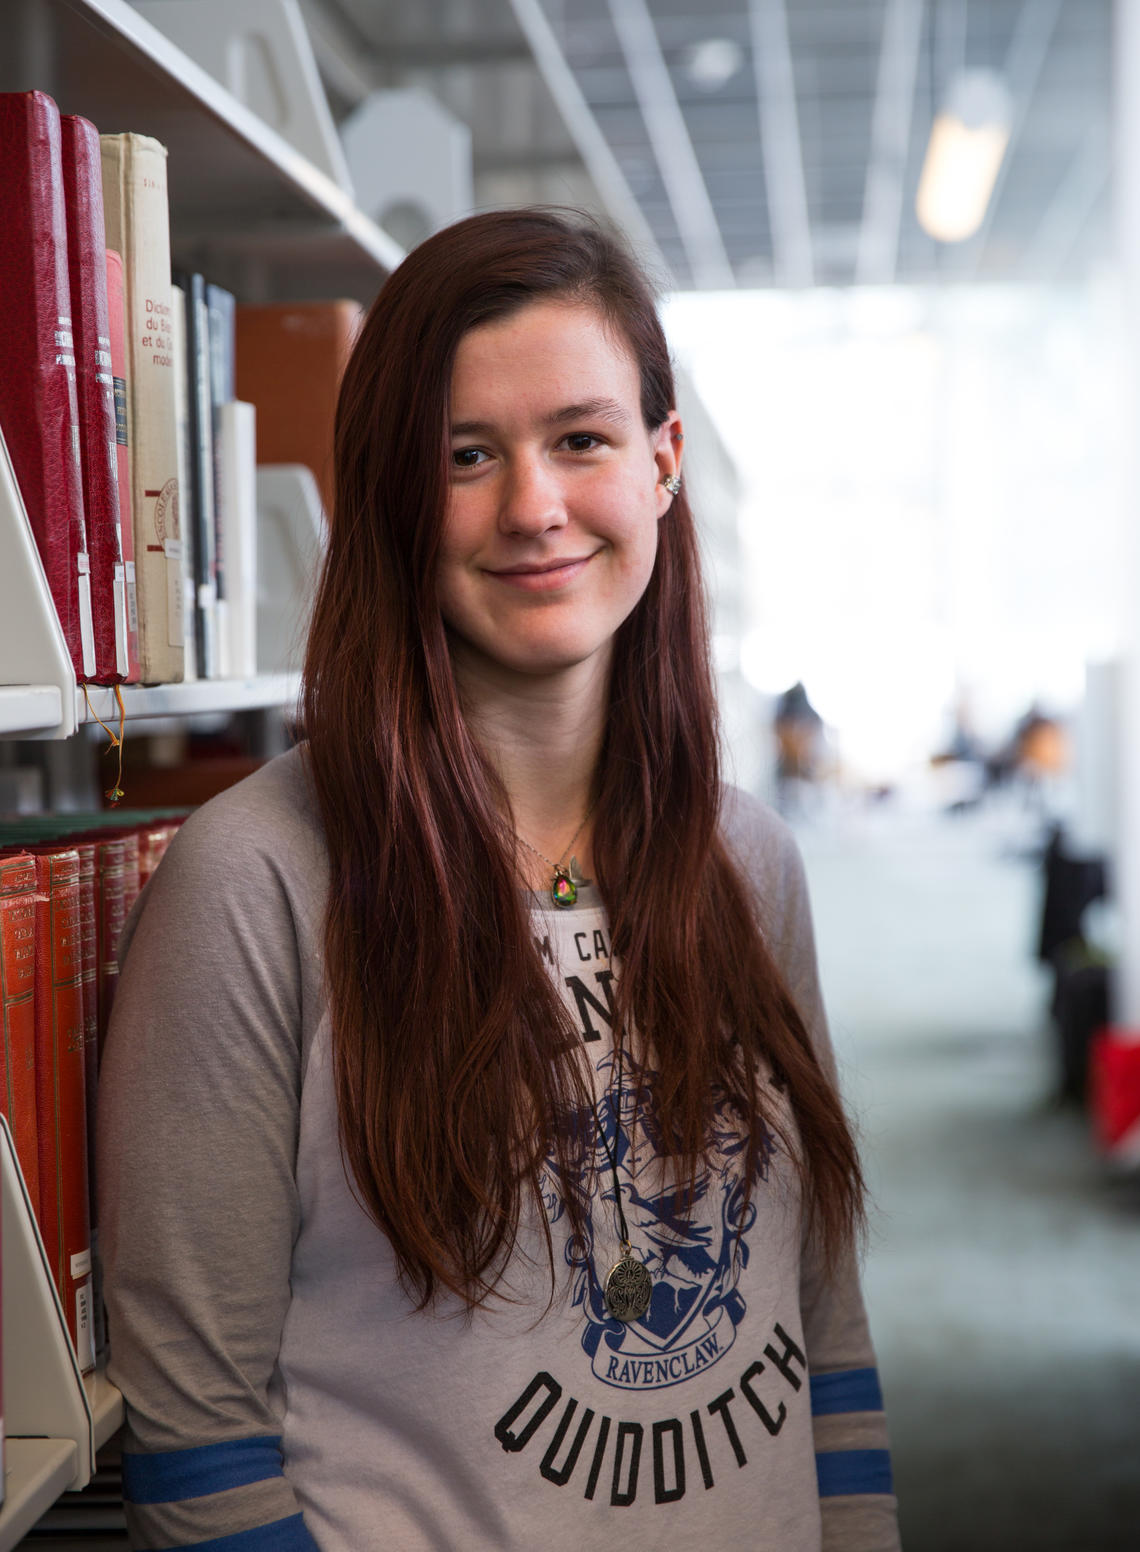 Kate Anderson's interest in analyzing old and rare books got a boost from PURE, the Program for Undergraduate Research Experience.